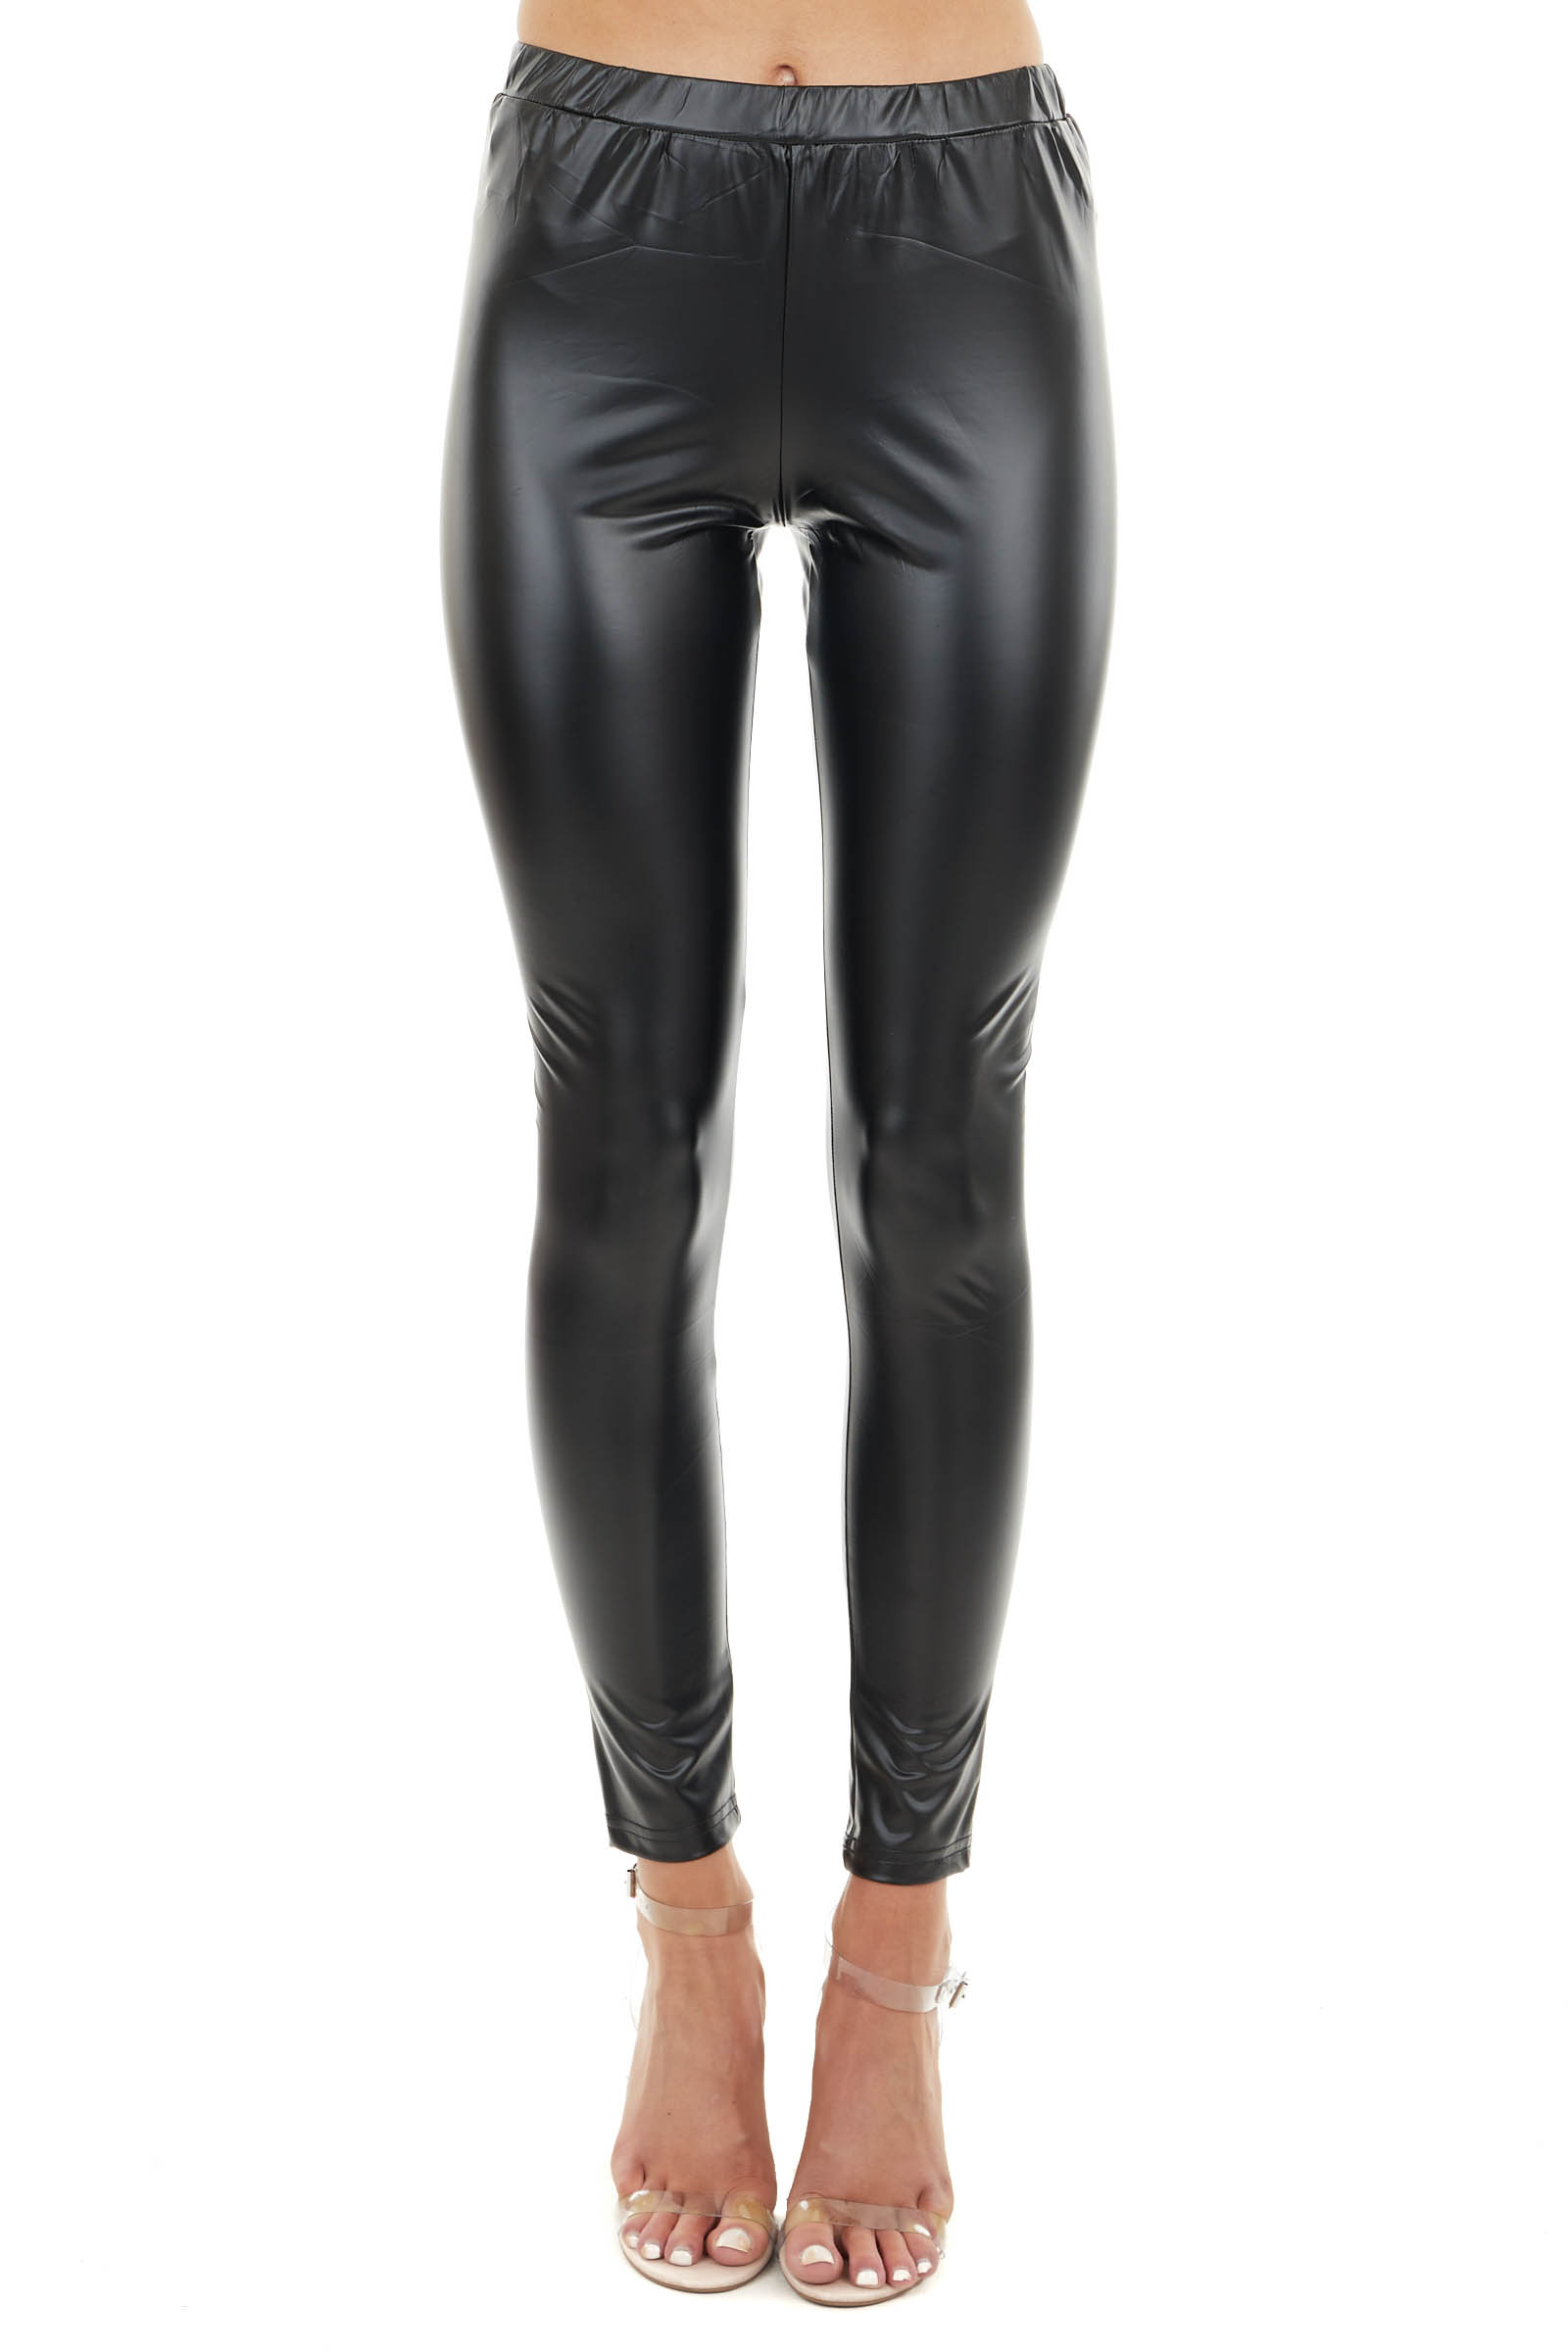 Black Faux Leather Skinny Fit High Waisted Leggings